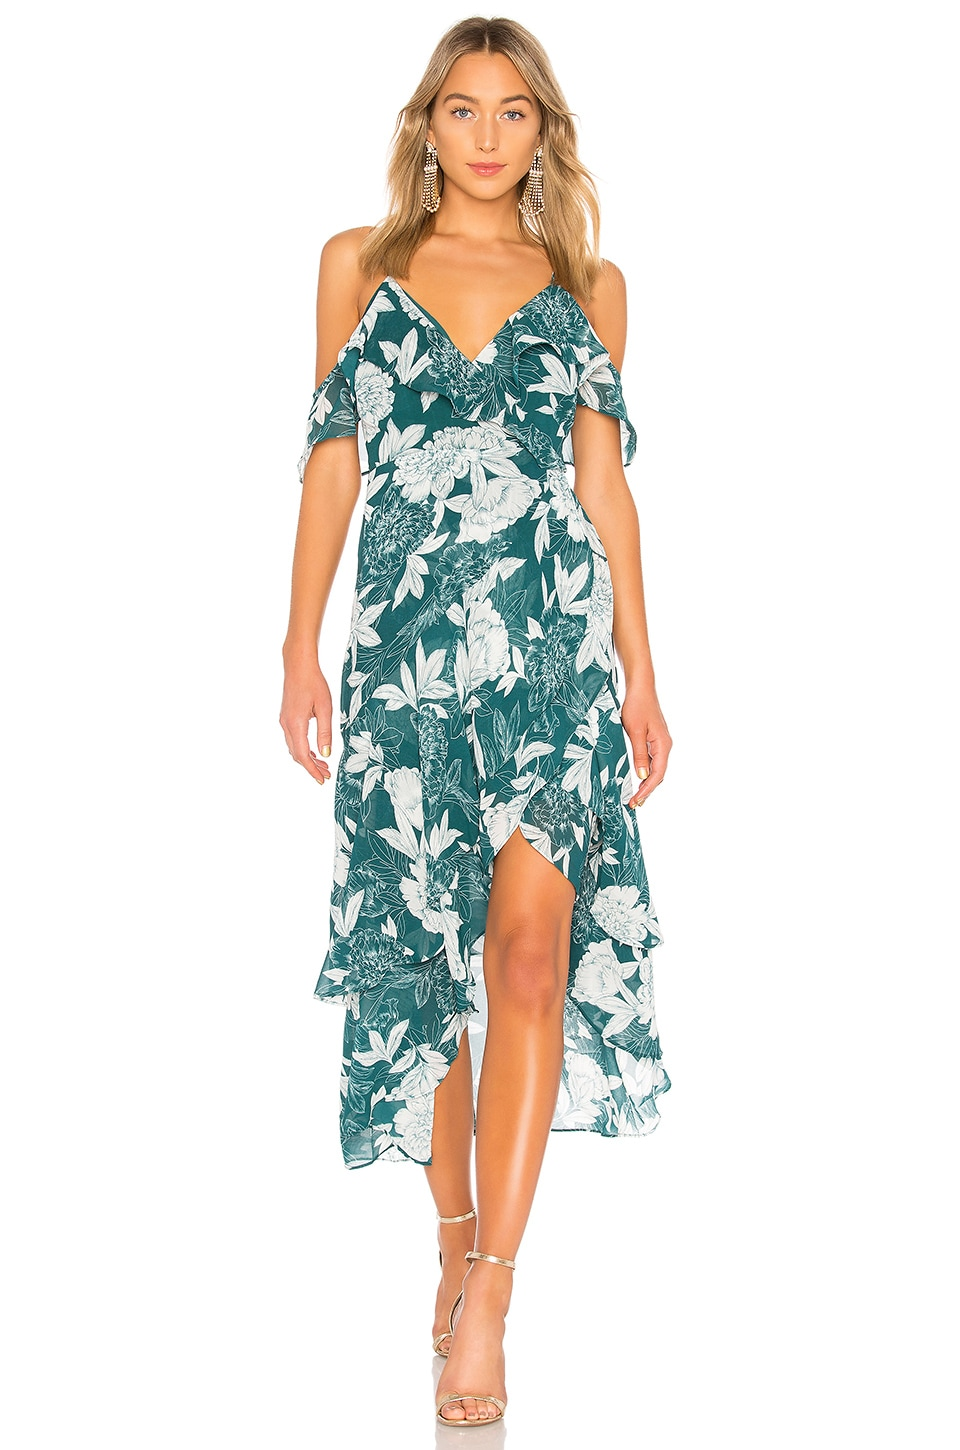 Bardot Floral Party Dress in Statement Floral